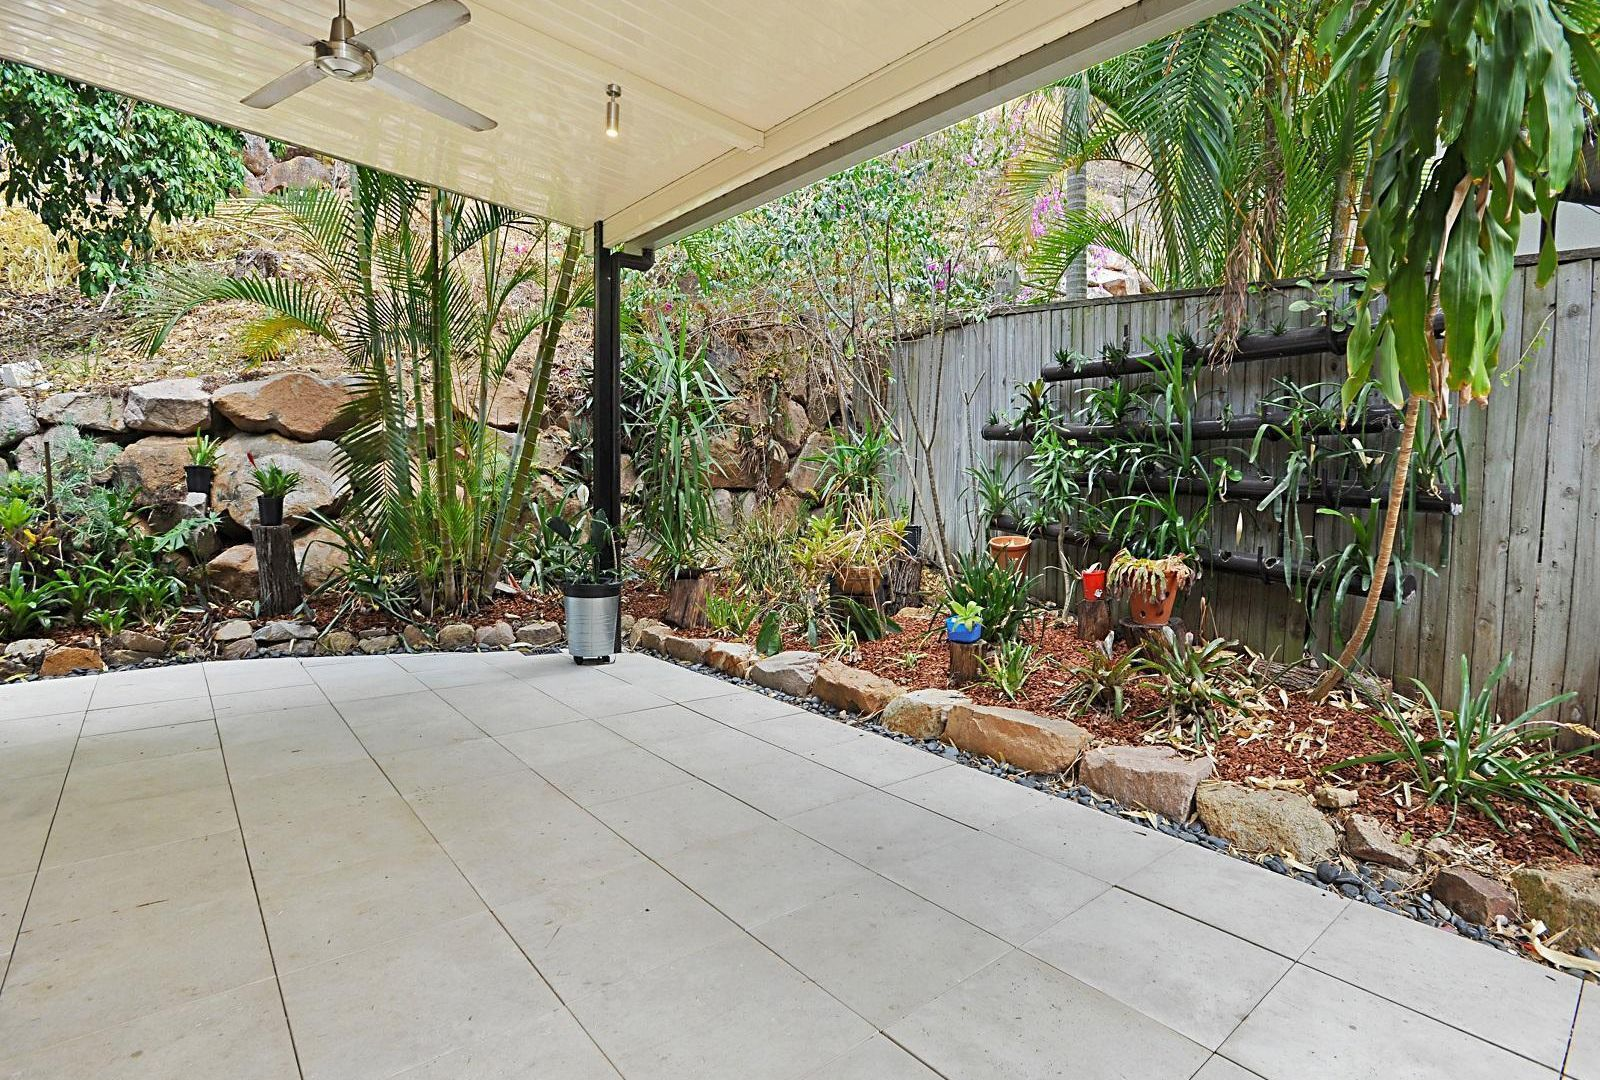 14/1 Glenquarie Place, The Gap QLD 4061, Image 2